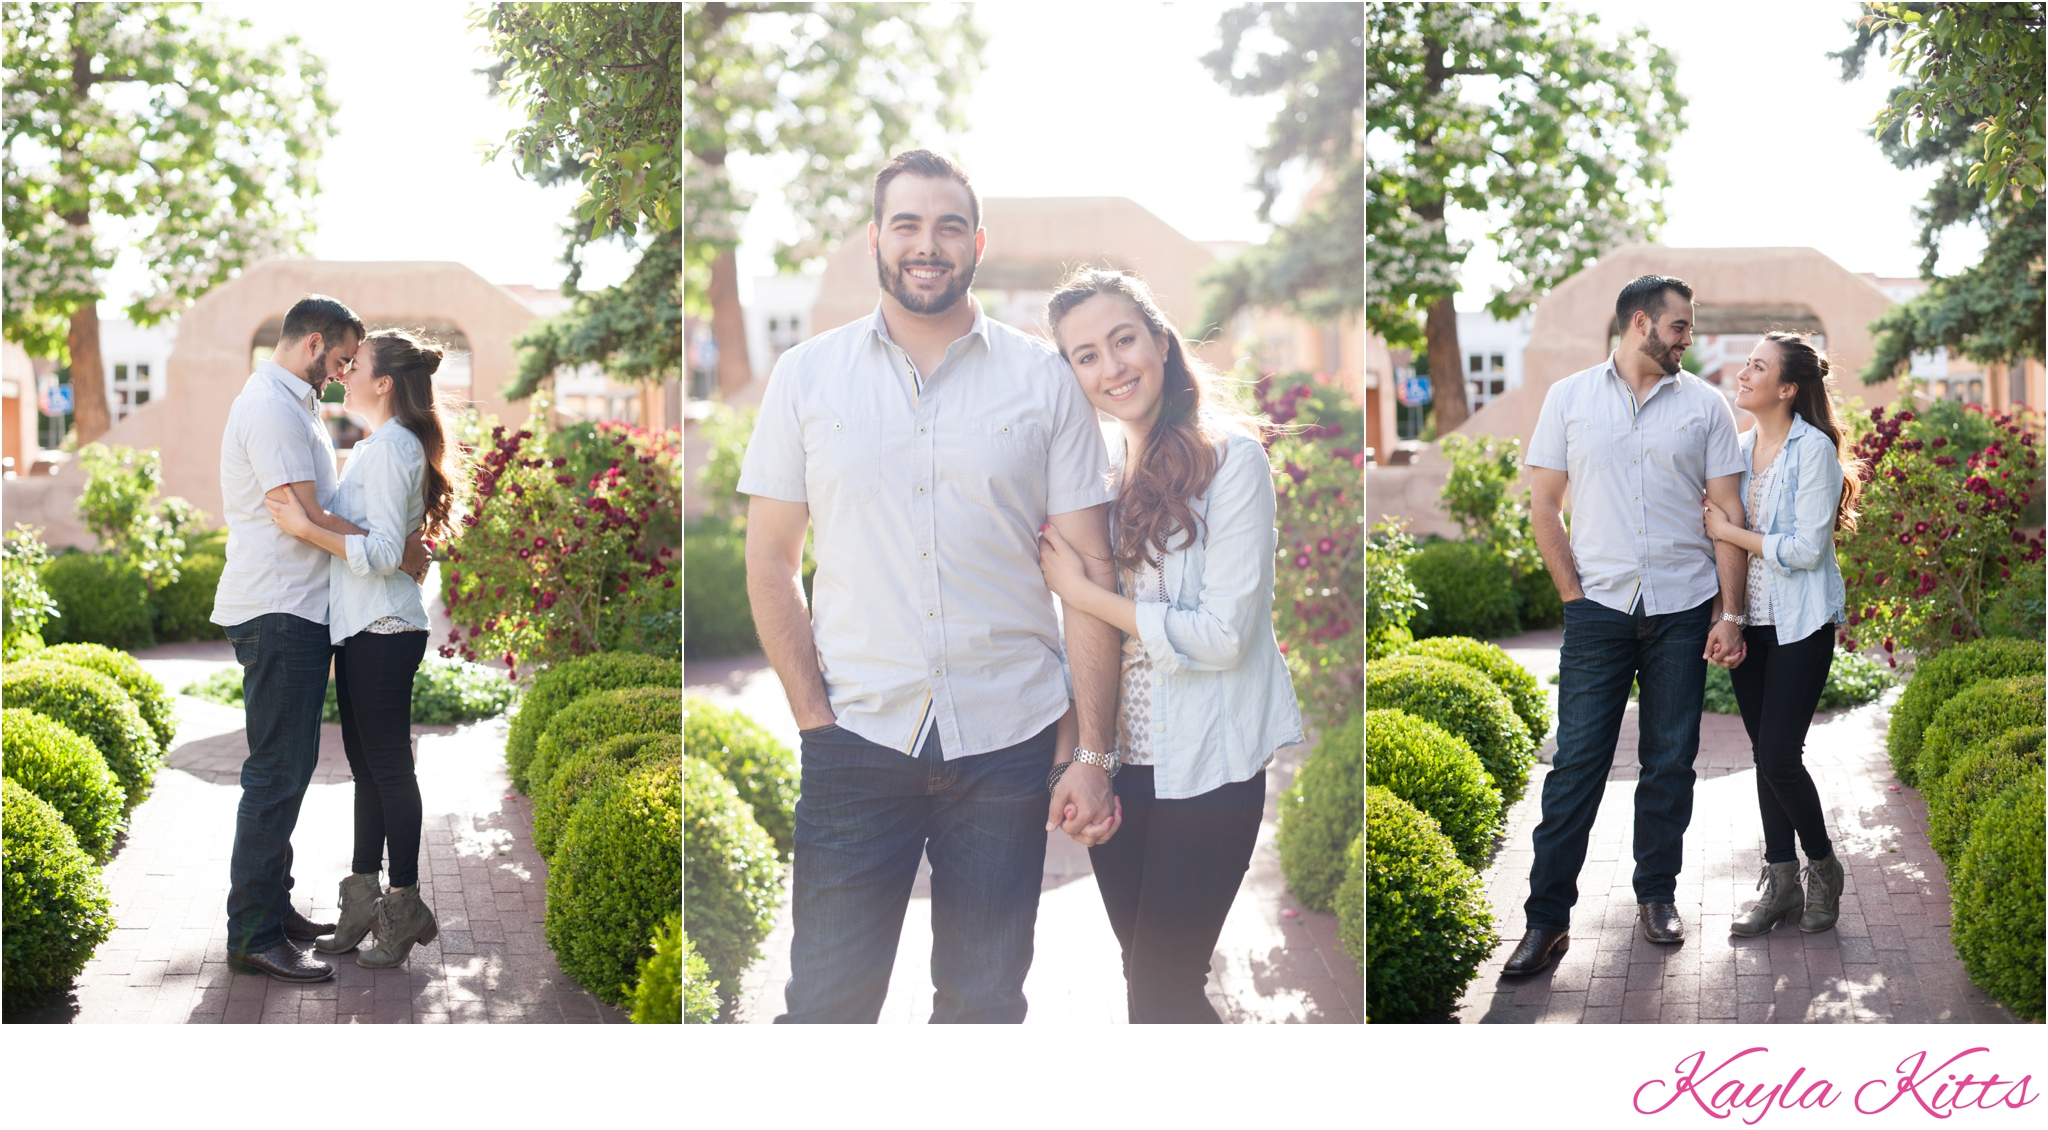 kayla kitts photography - albuquerque wedding photographer - green jeans - brewery engagement session - old town - destination wedding - cabo wedding photographer - santa fe brewery_0009.jpg